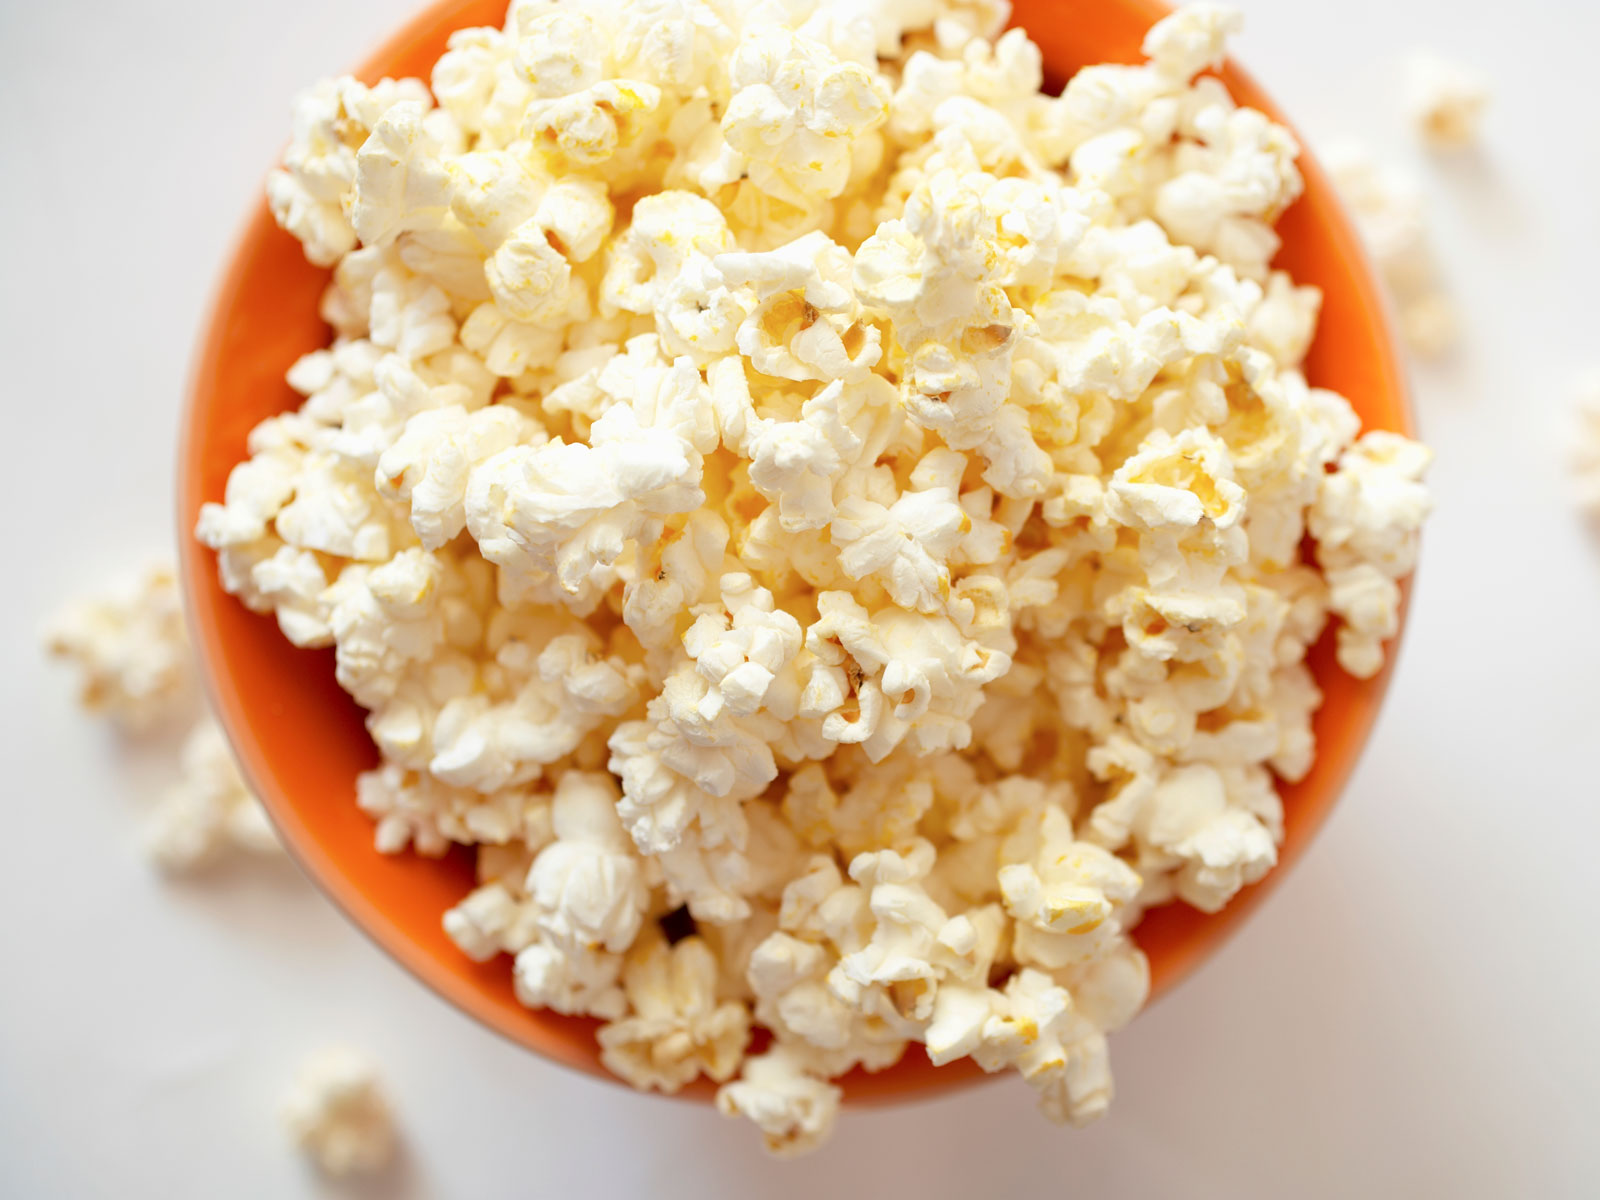 Celebrate National Popcorn Day with the Best Microwave Popcorn